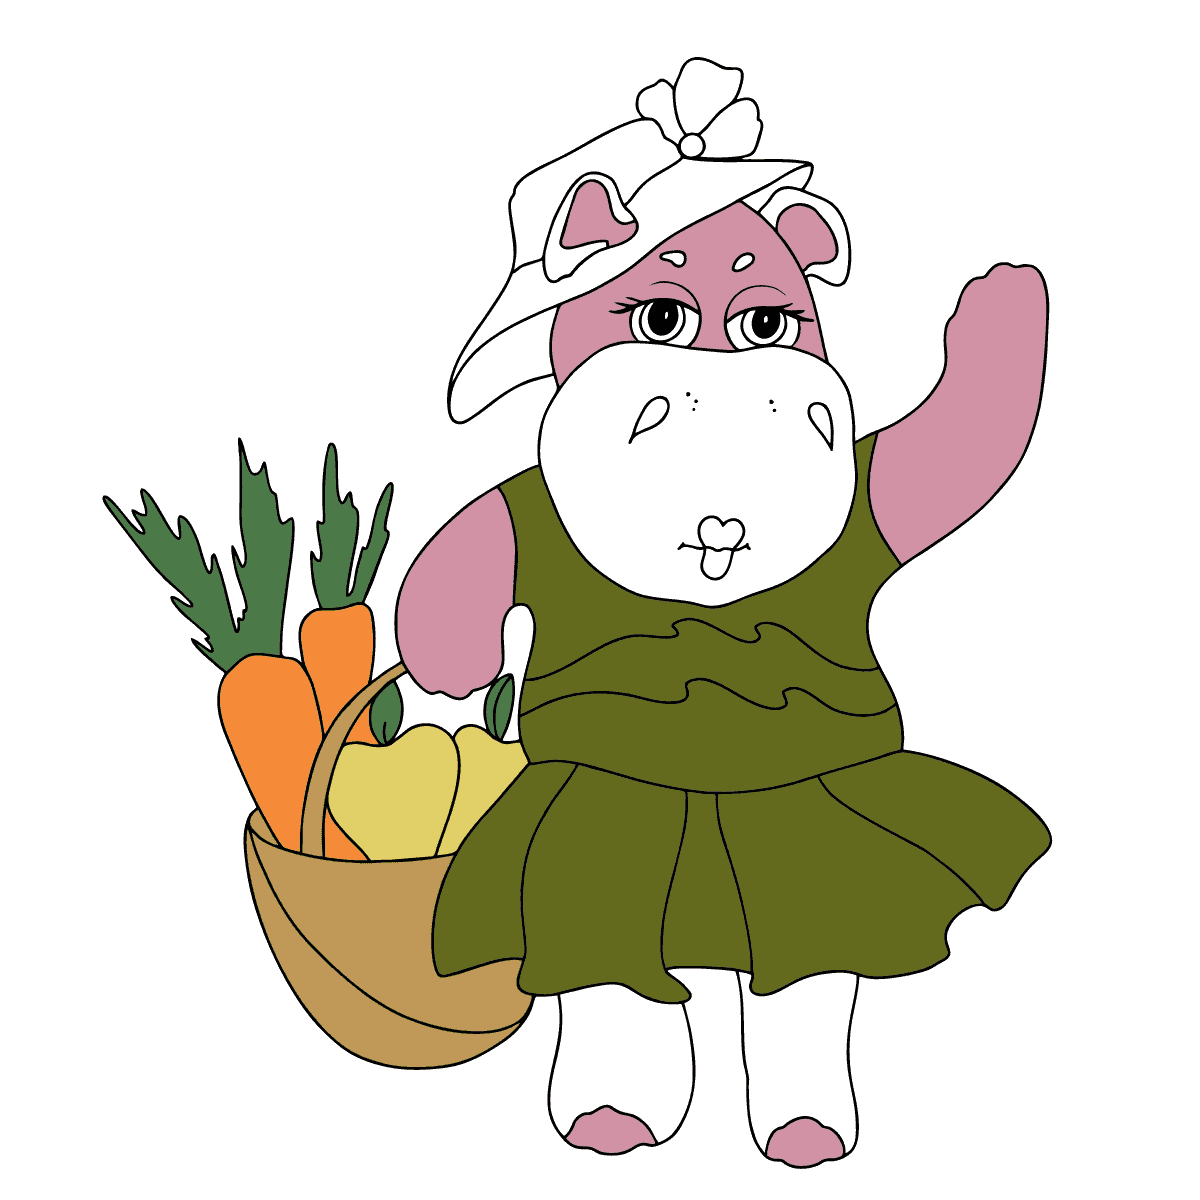 Coloring Page - A Hippo with a Basket of Carrots and Apples - Check it Out